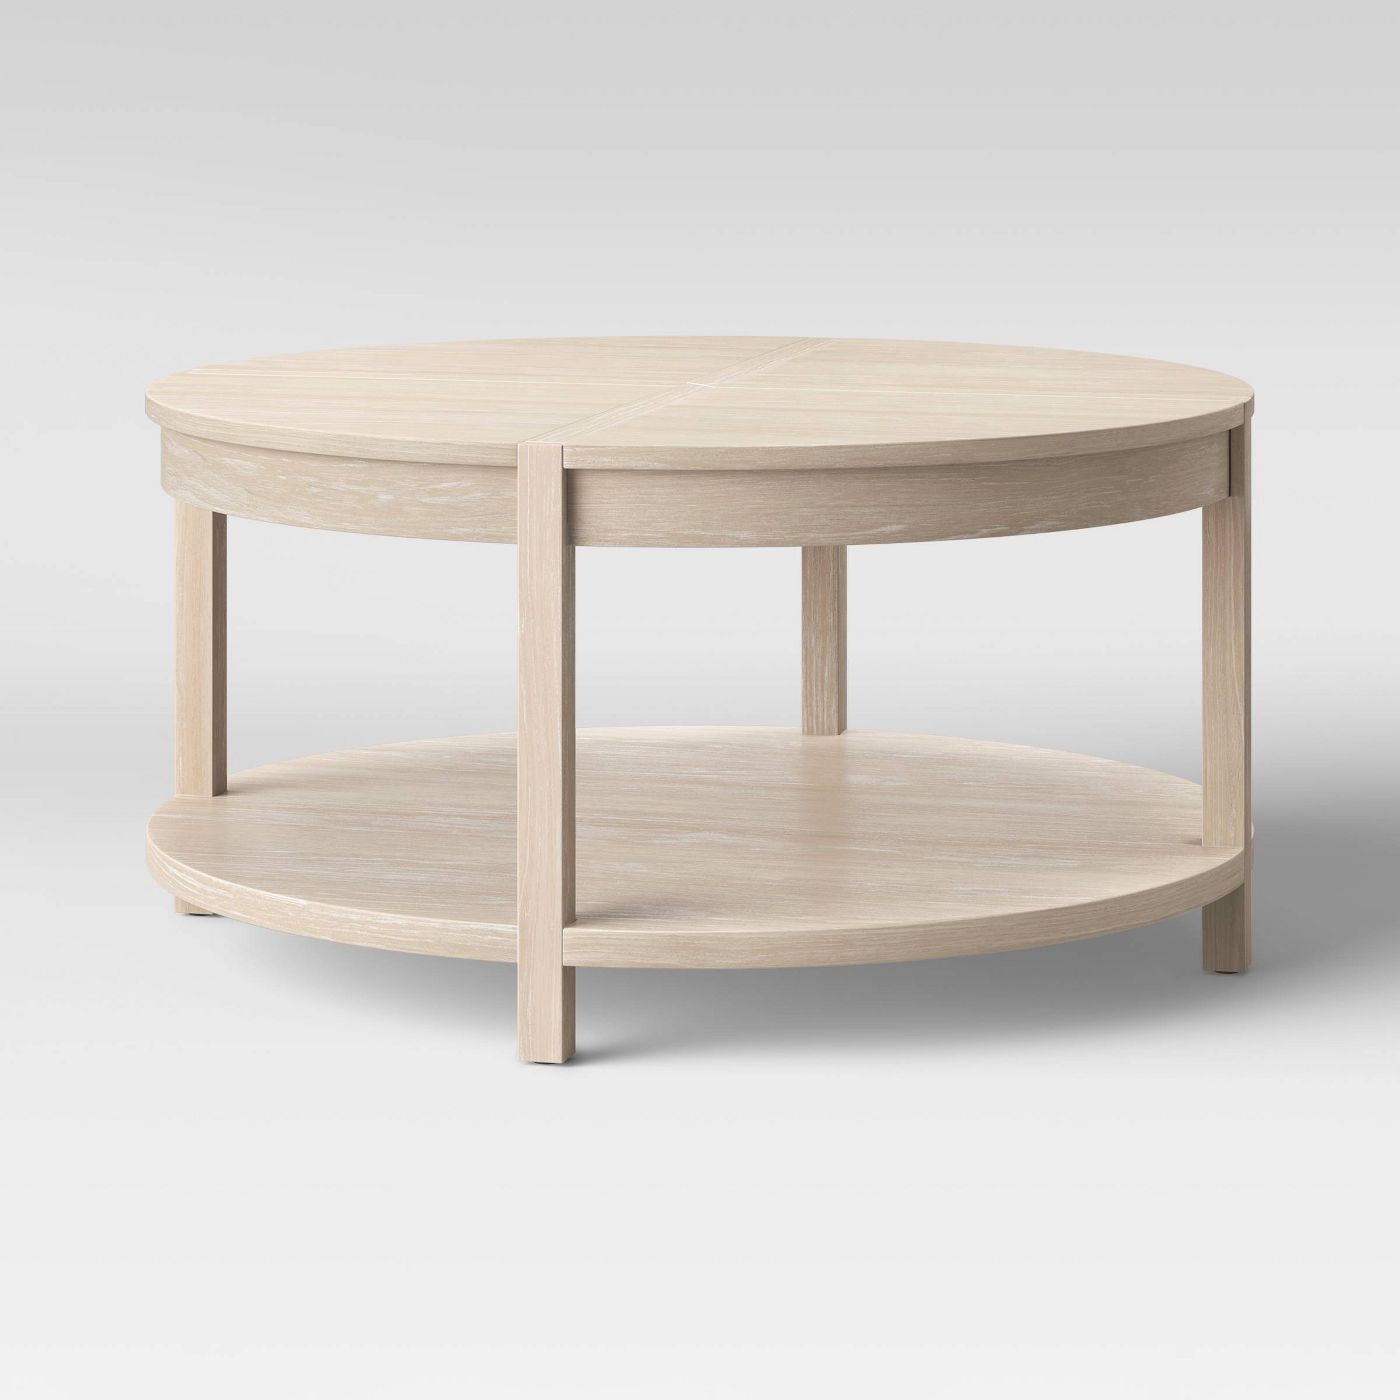 Porto Round Wood Coffee Table Bleached Wood Project 62 In 2021 Round Wood Coffee Table Coffee Table Coffee Table Wood [ 1400 x 1400 Pixel ]